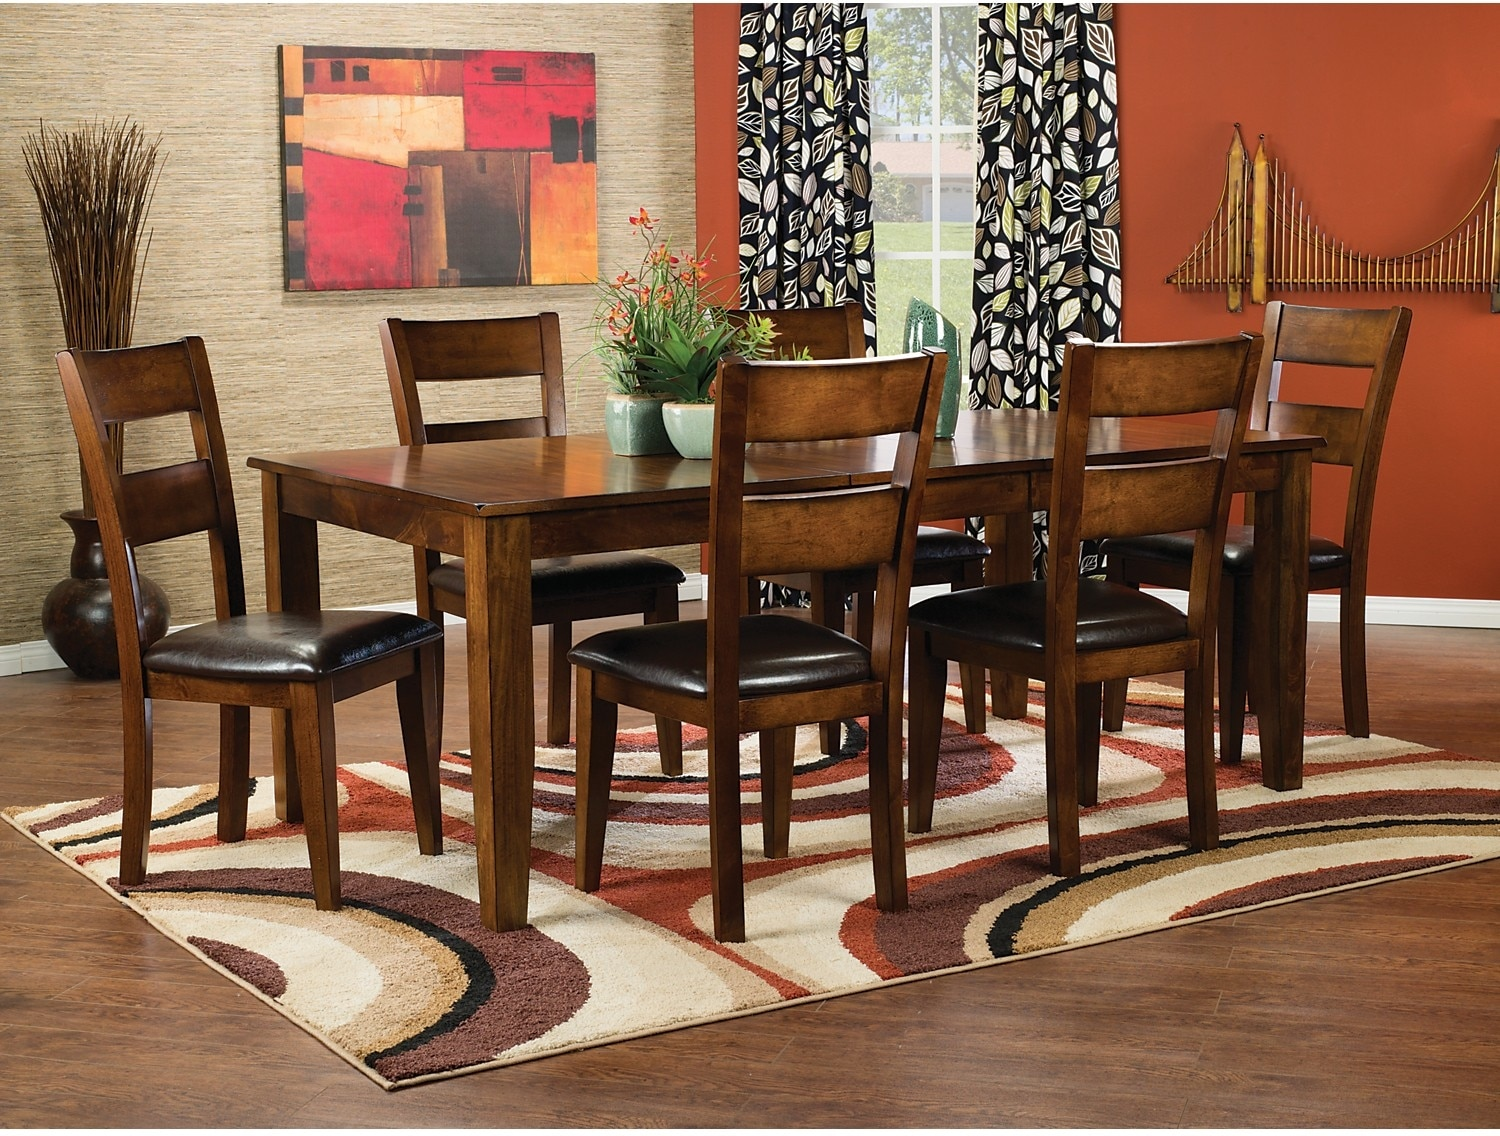 Dakota Light 8-Piece Dining Package